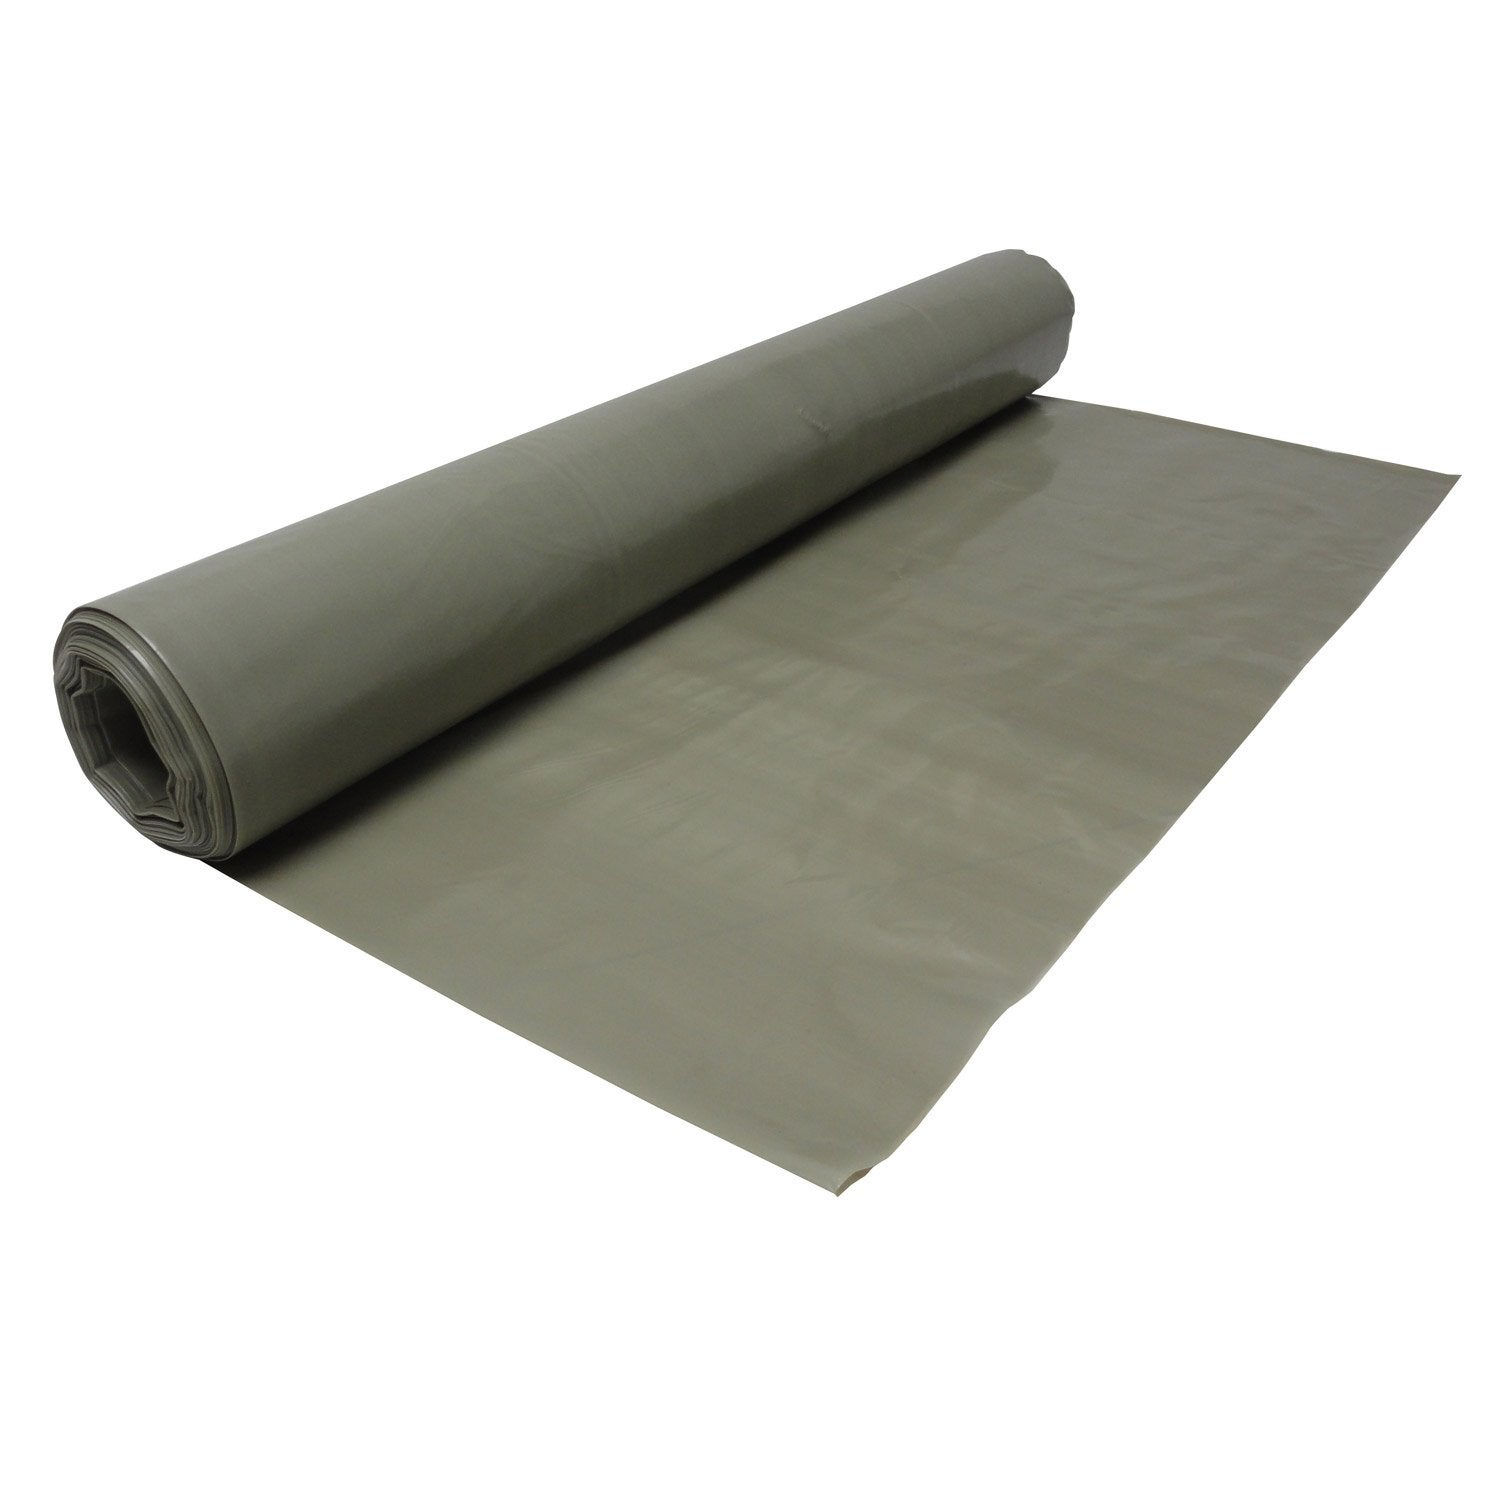 Film sous dalle polyethyl ne 10 x 4 m leroy merlin - Castorama pelouse synthetique ...